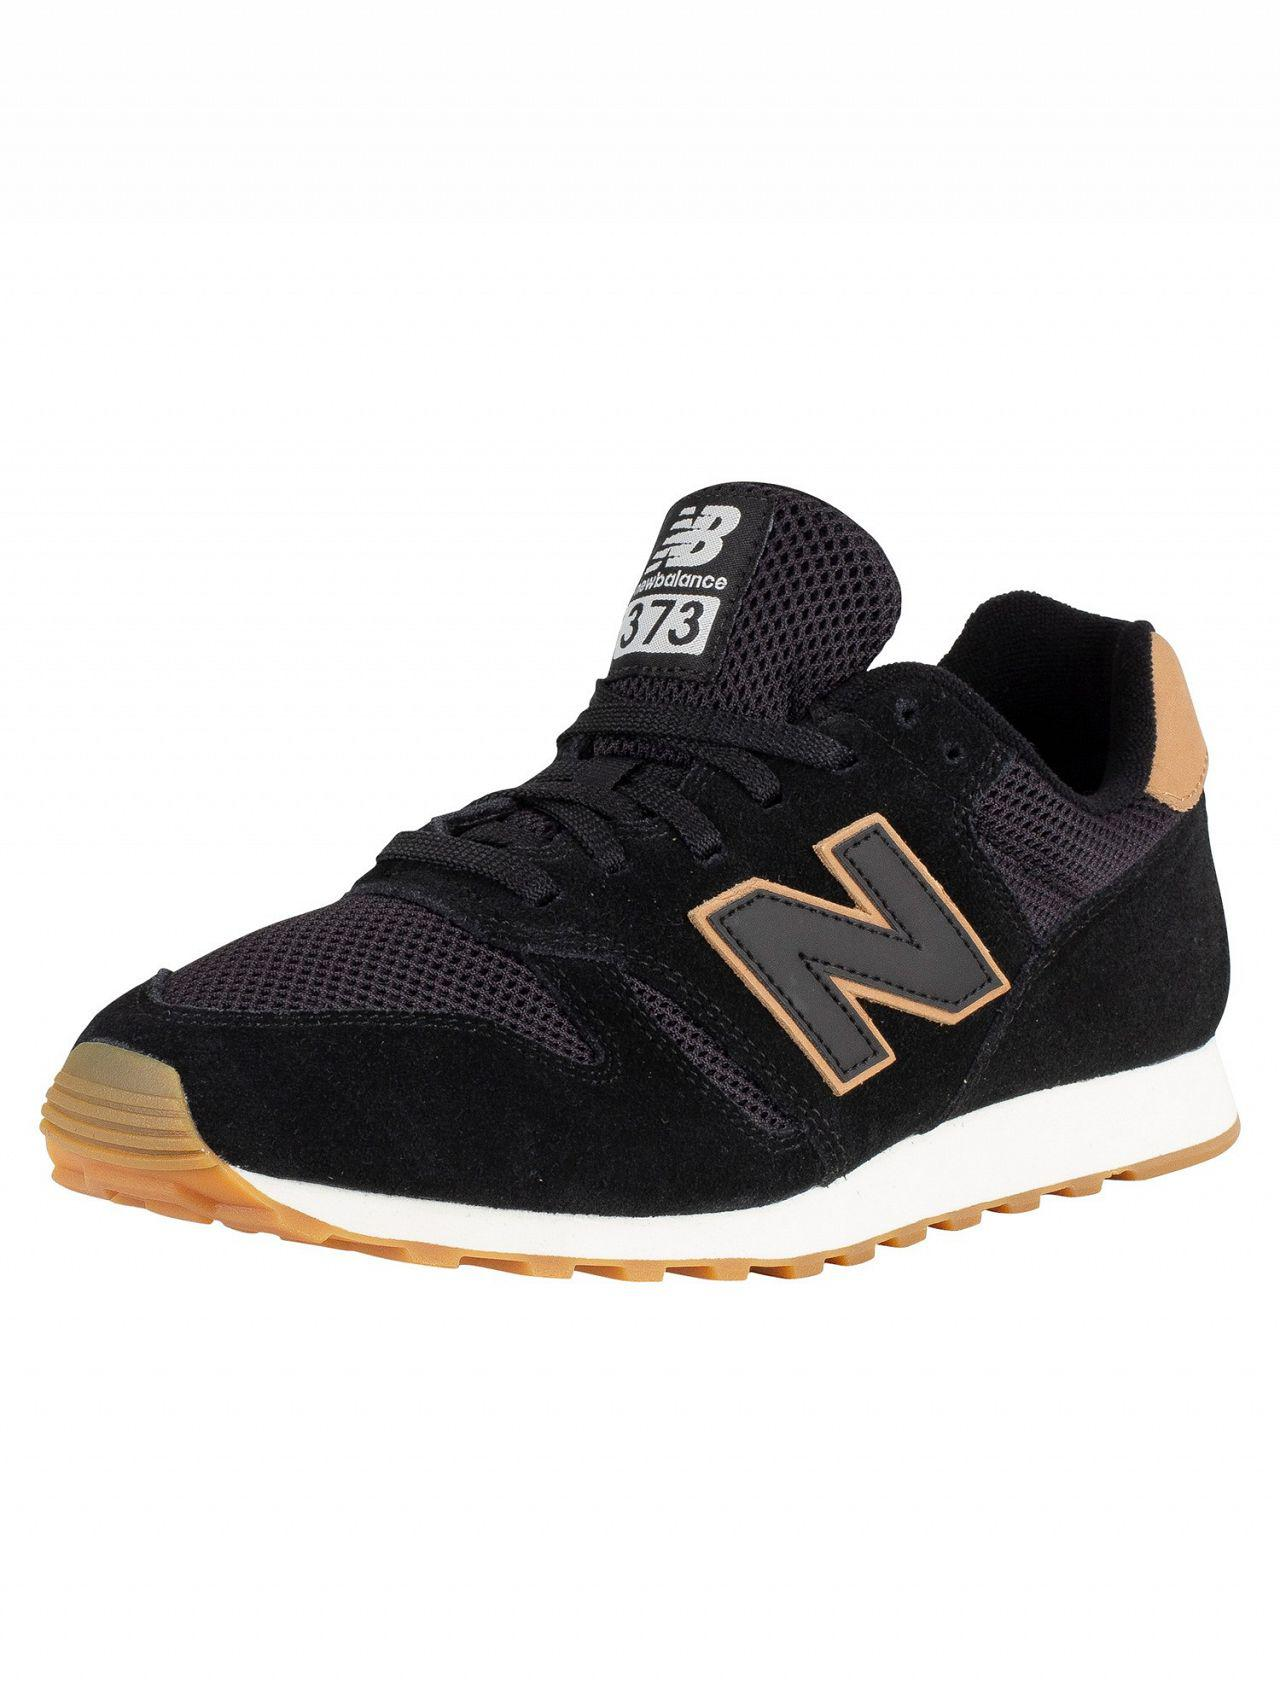 5d6ee69b359 Lyst - New Balance Black tan 373 Suede Trainers in Black for Men